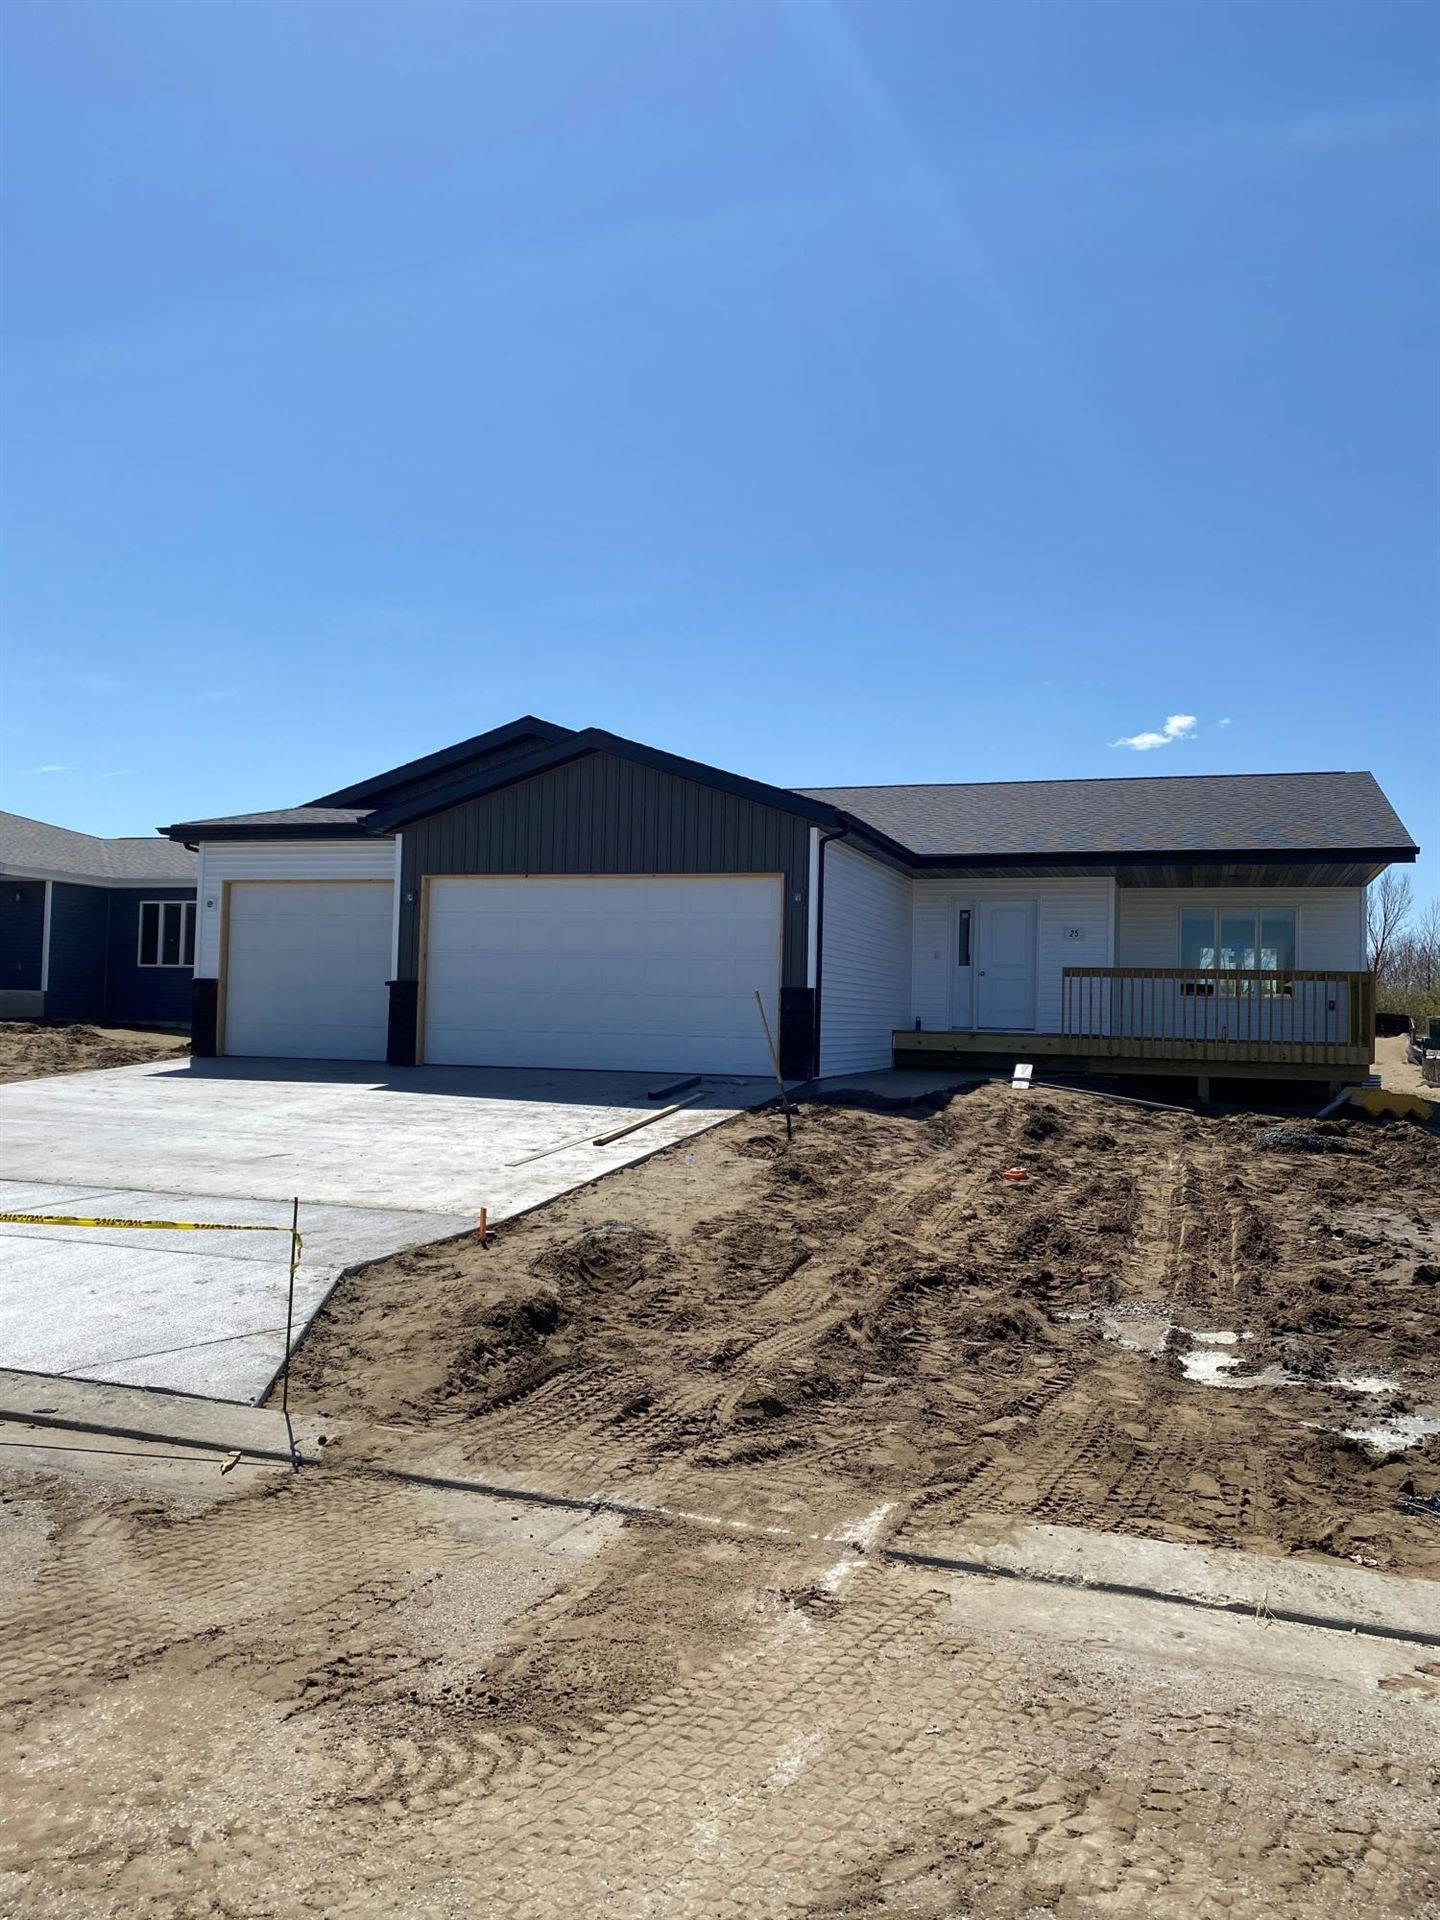 25 Mcginnis Way, Lincoln, ND 58504 - #: 410810